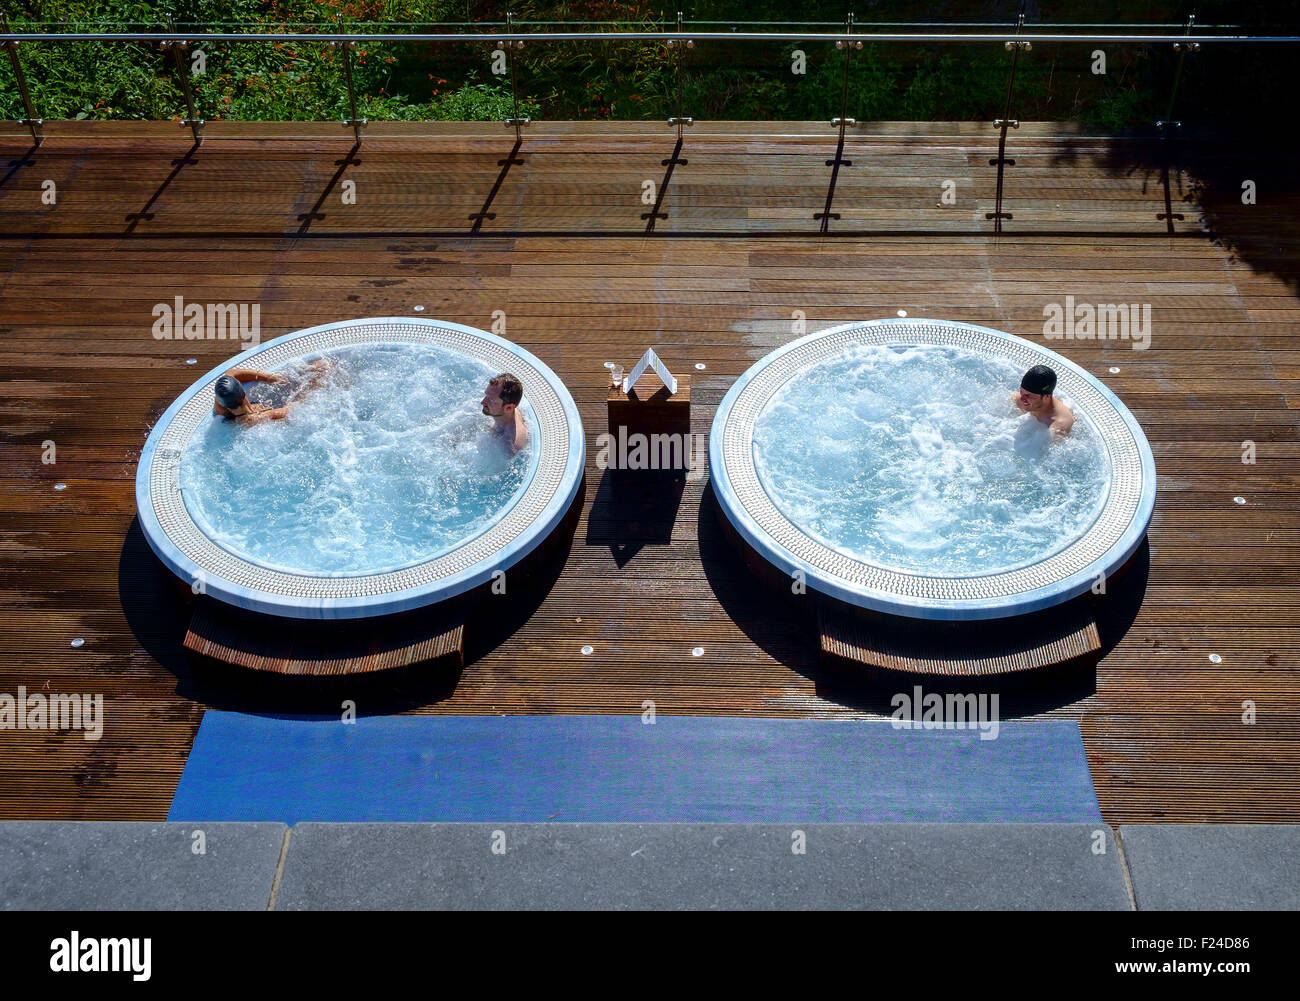 hot tub stockfotos hot tub bilder alamy. Black Bedroom Furniture Sets. Home Design Ideas